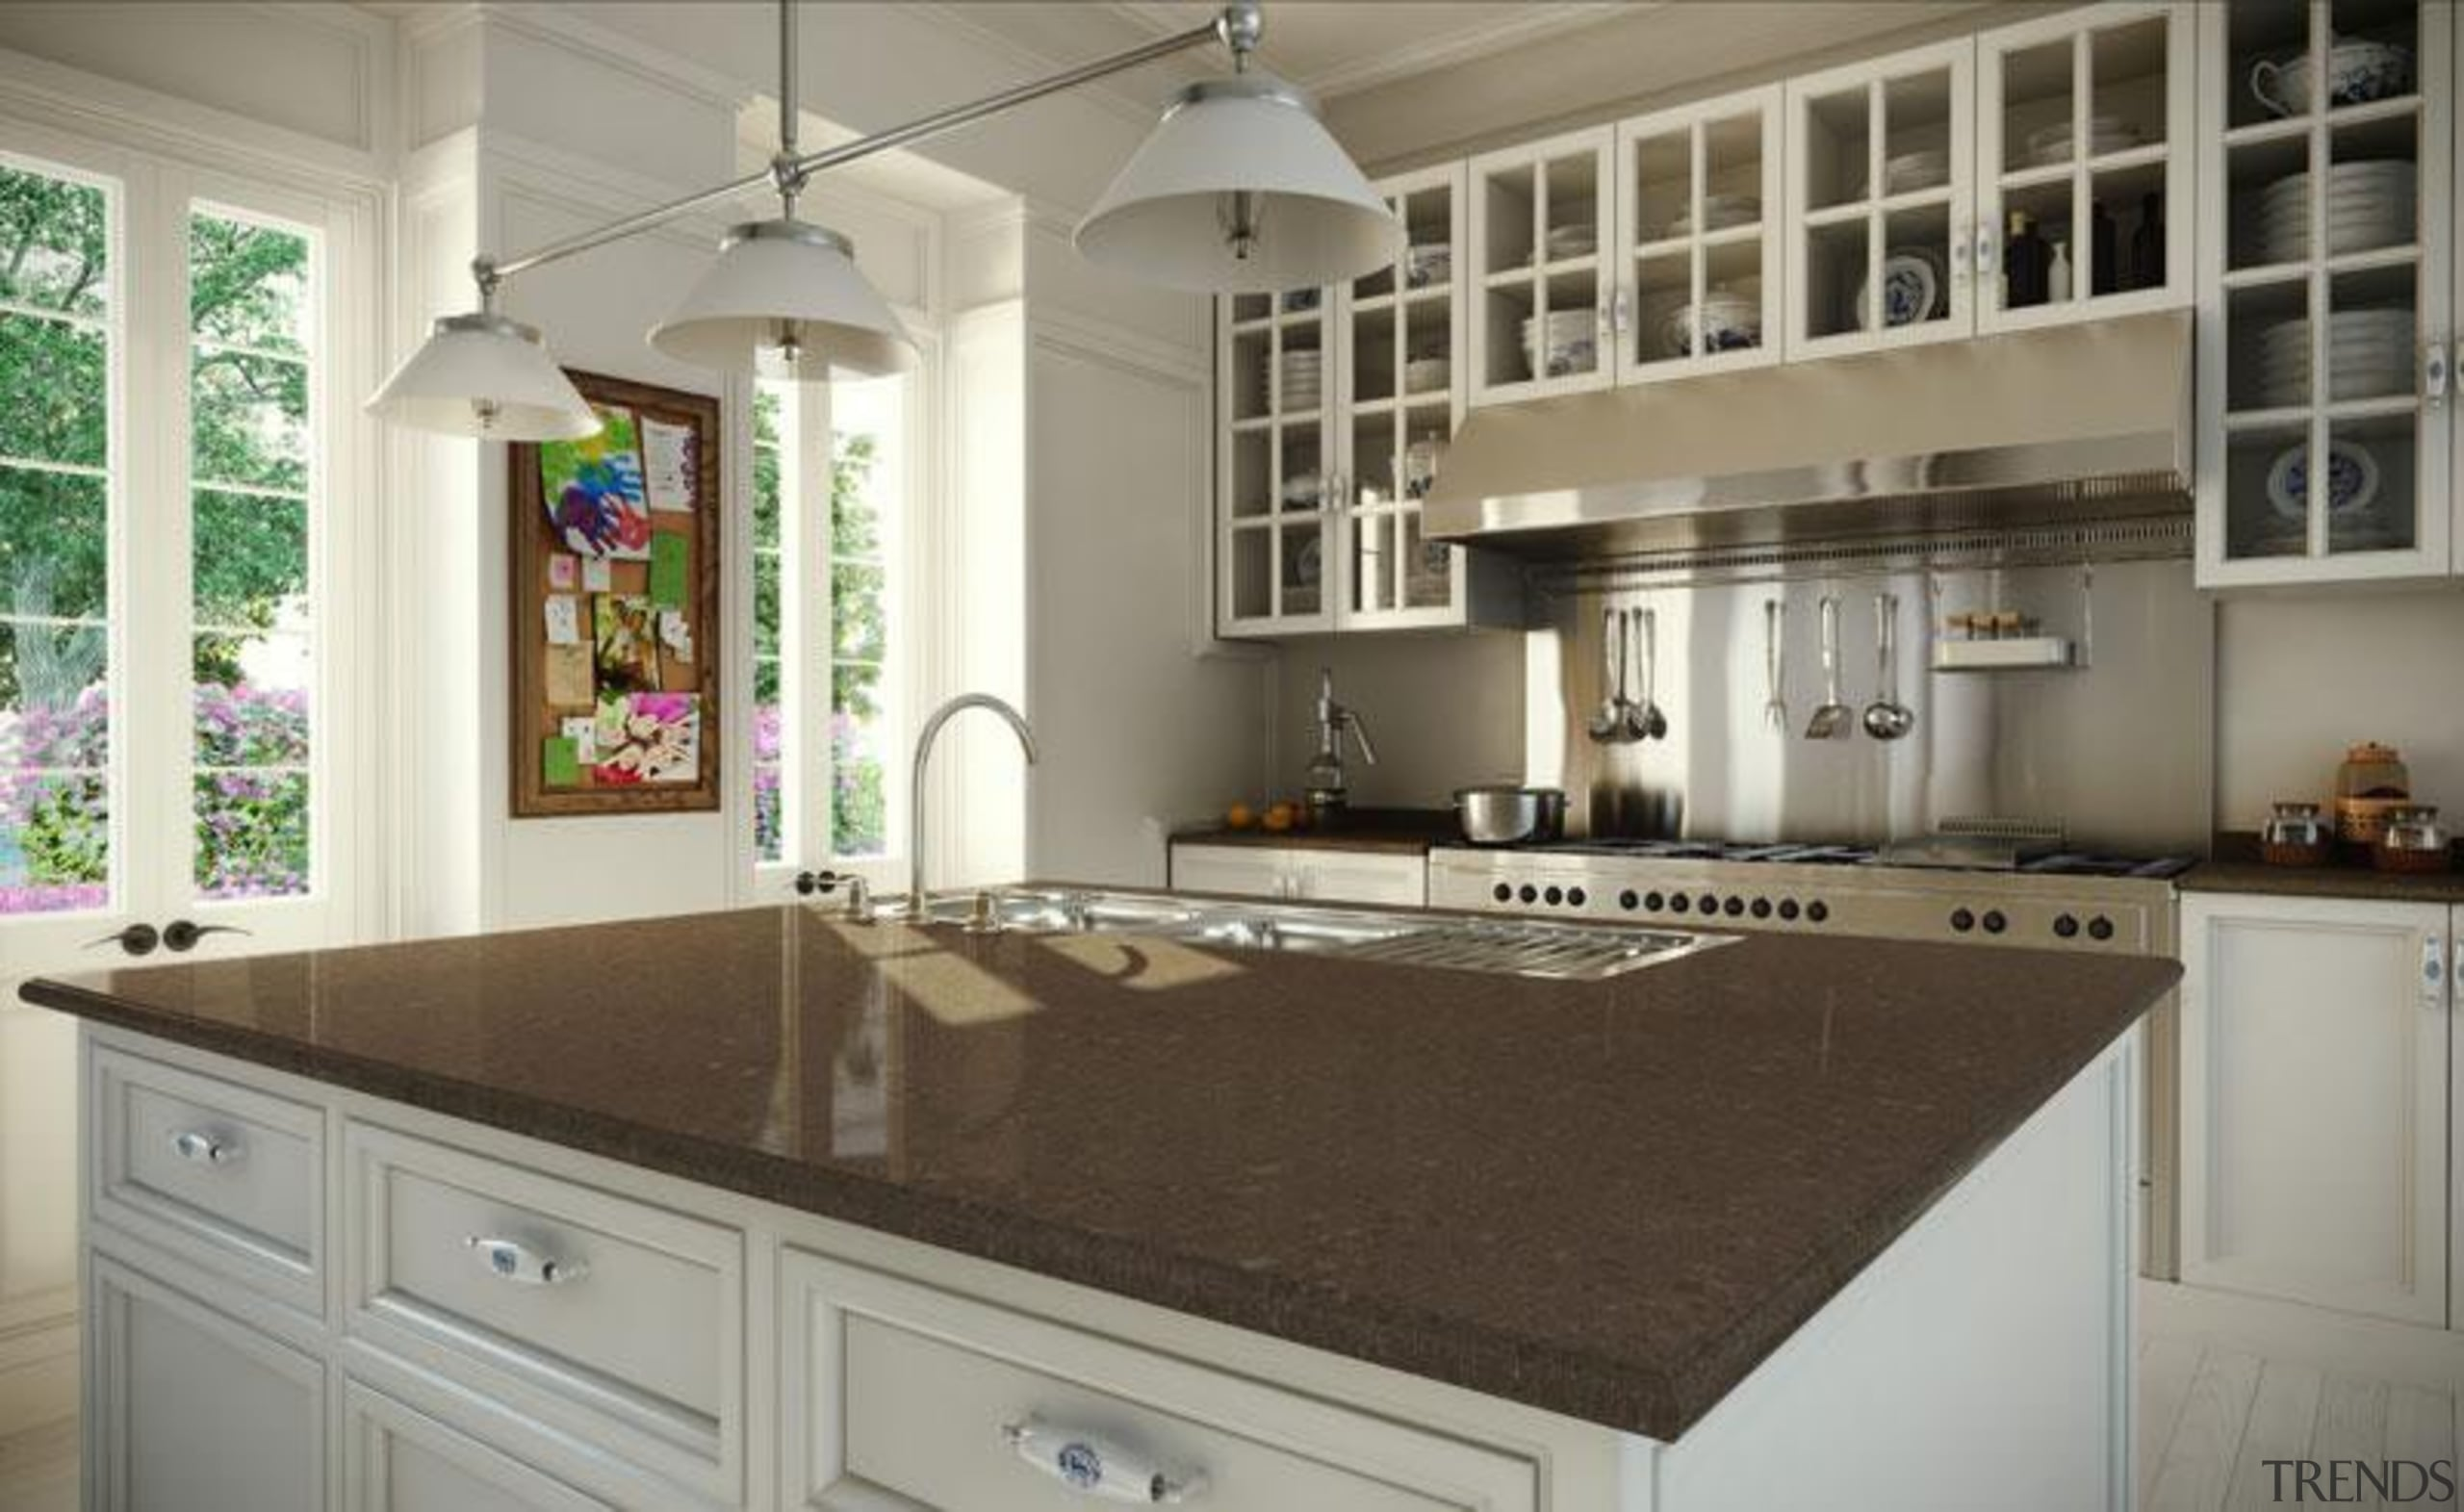 Blended natural mid brown tones within the base cabinetry, countertop, cuisine classique, home, interior design, kitchen, room, gray